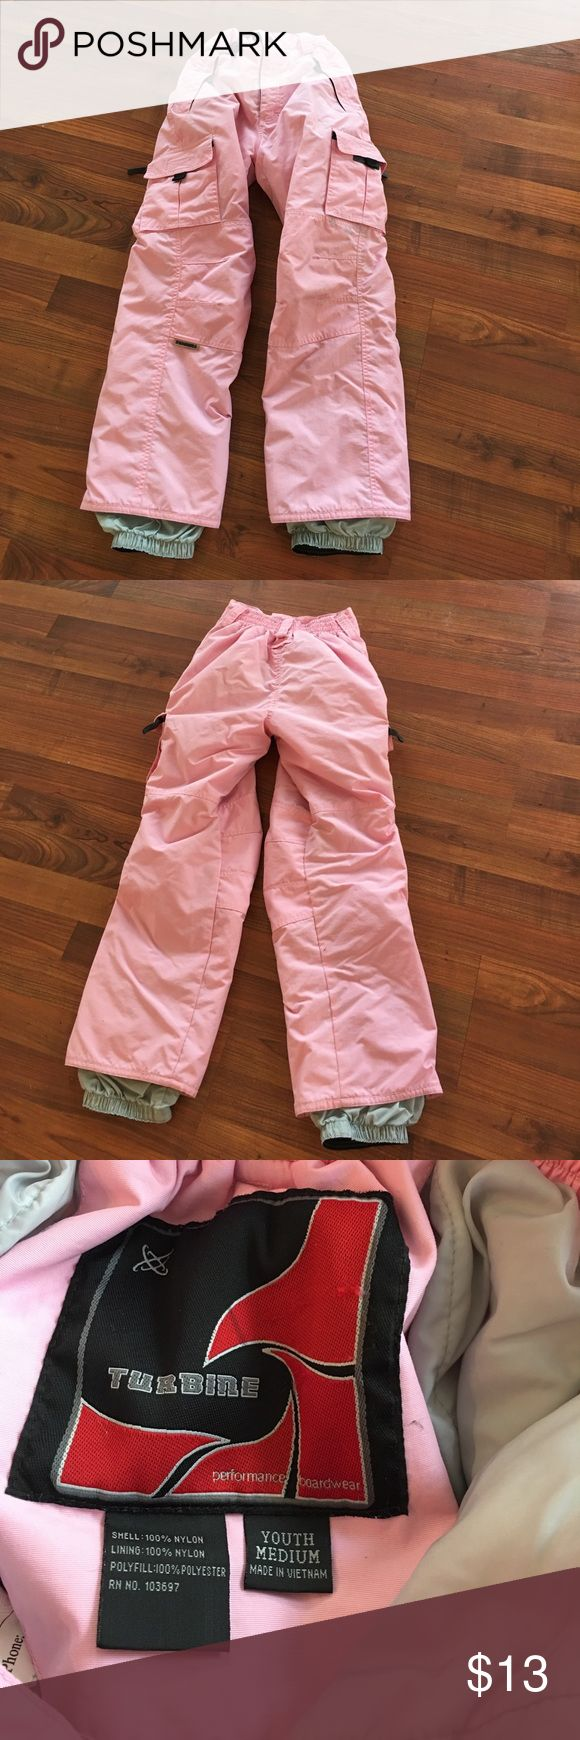 Turbine girls pink ski snowboard pants medium M Great pair of ski or snowboard pants for girls. Size medium (fits about girls 10-12). Made by Turbine. #4/27/17. turbine Bottoms